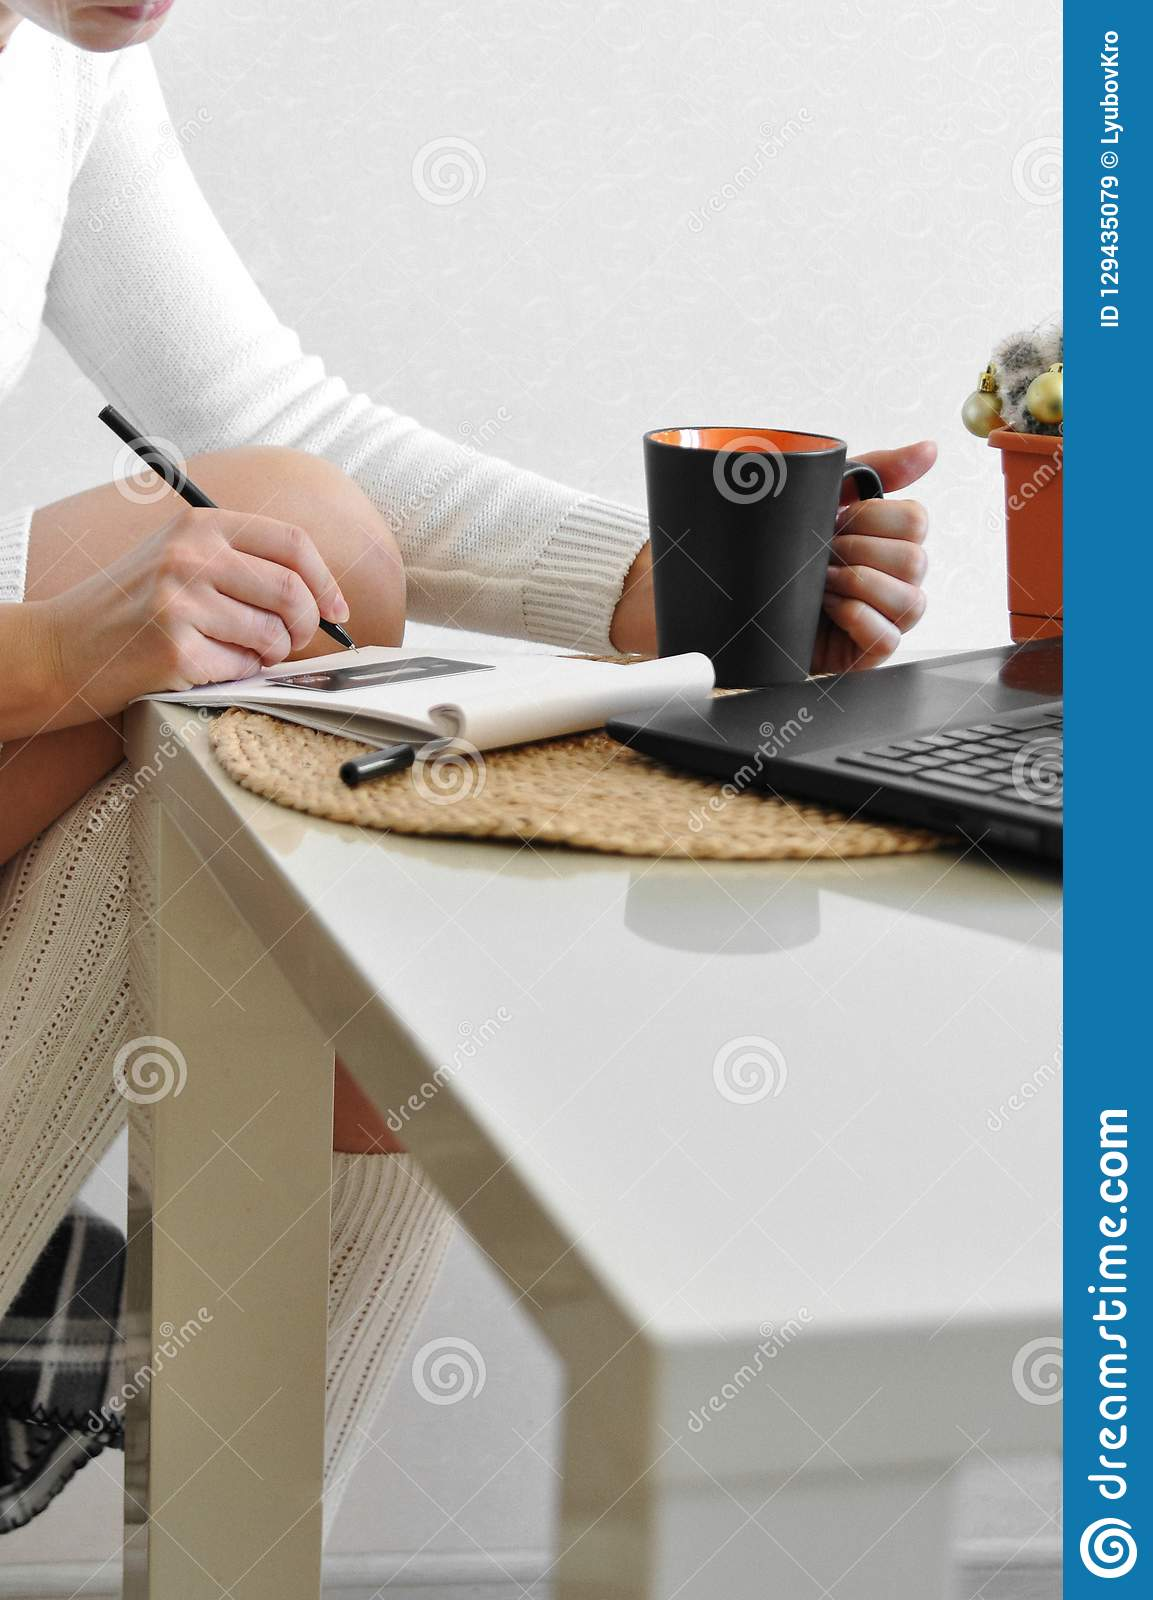 A housewife girl in a cozy white sweater and socks on a chair with a blanket works with a laptop in the kitchen. Online shopping w